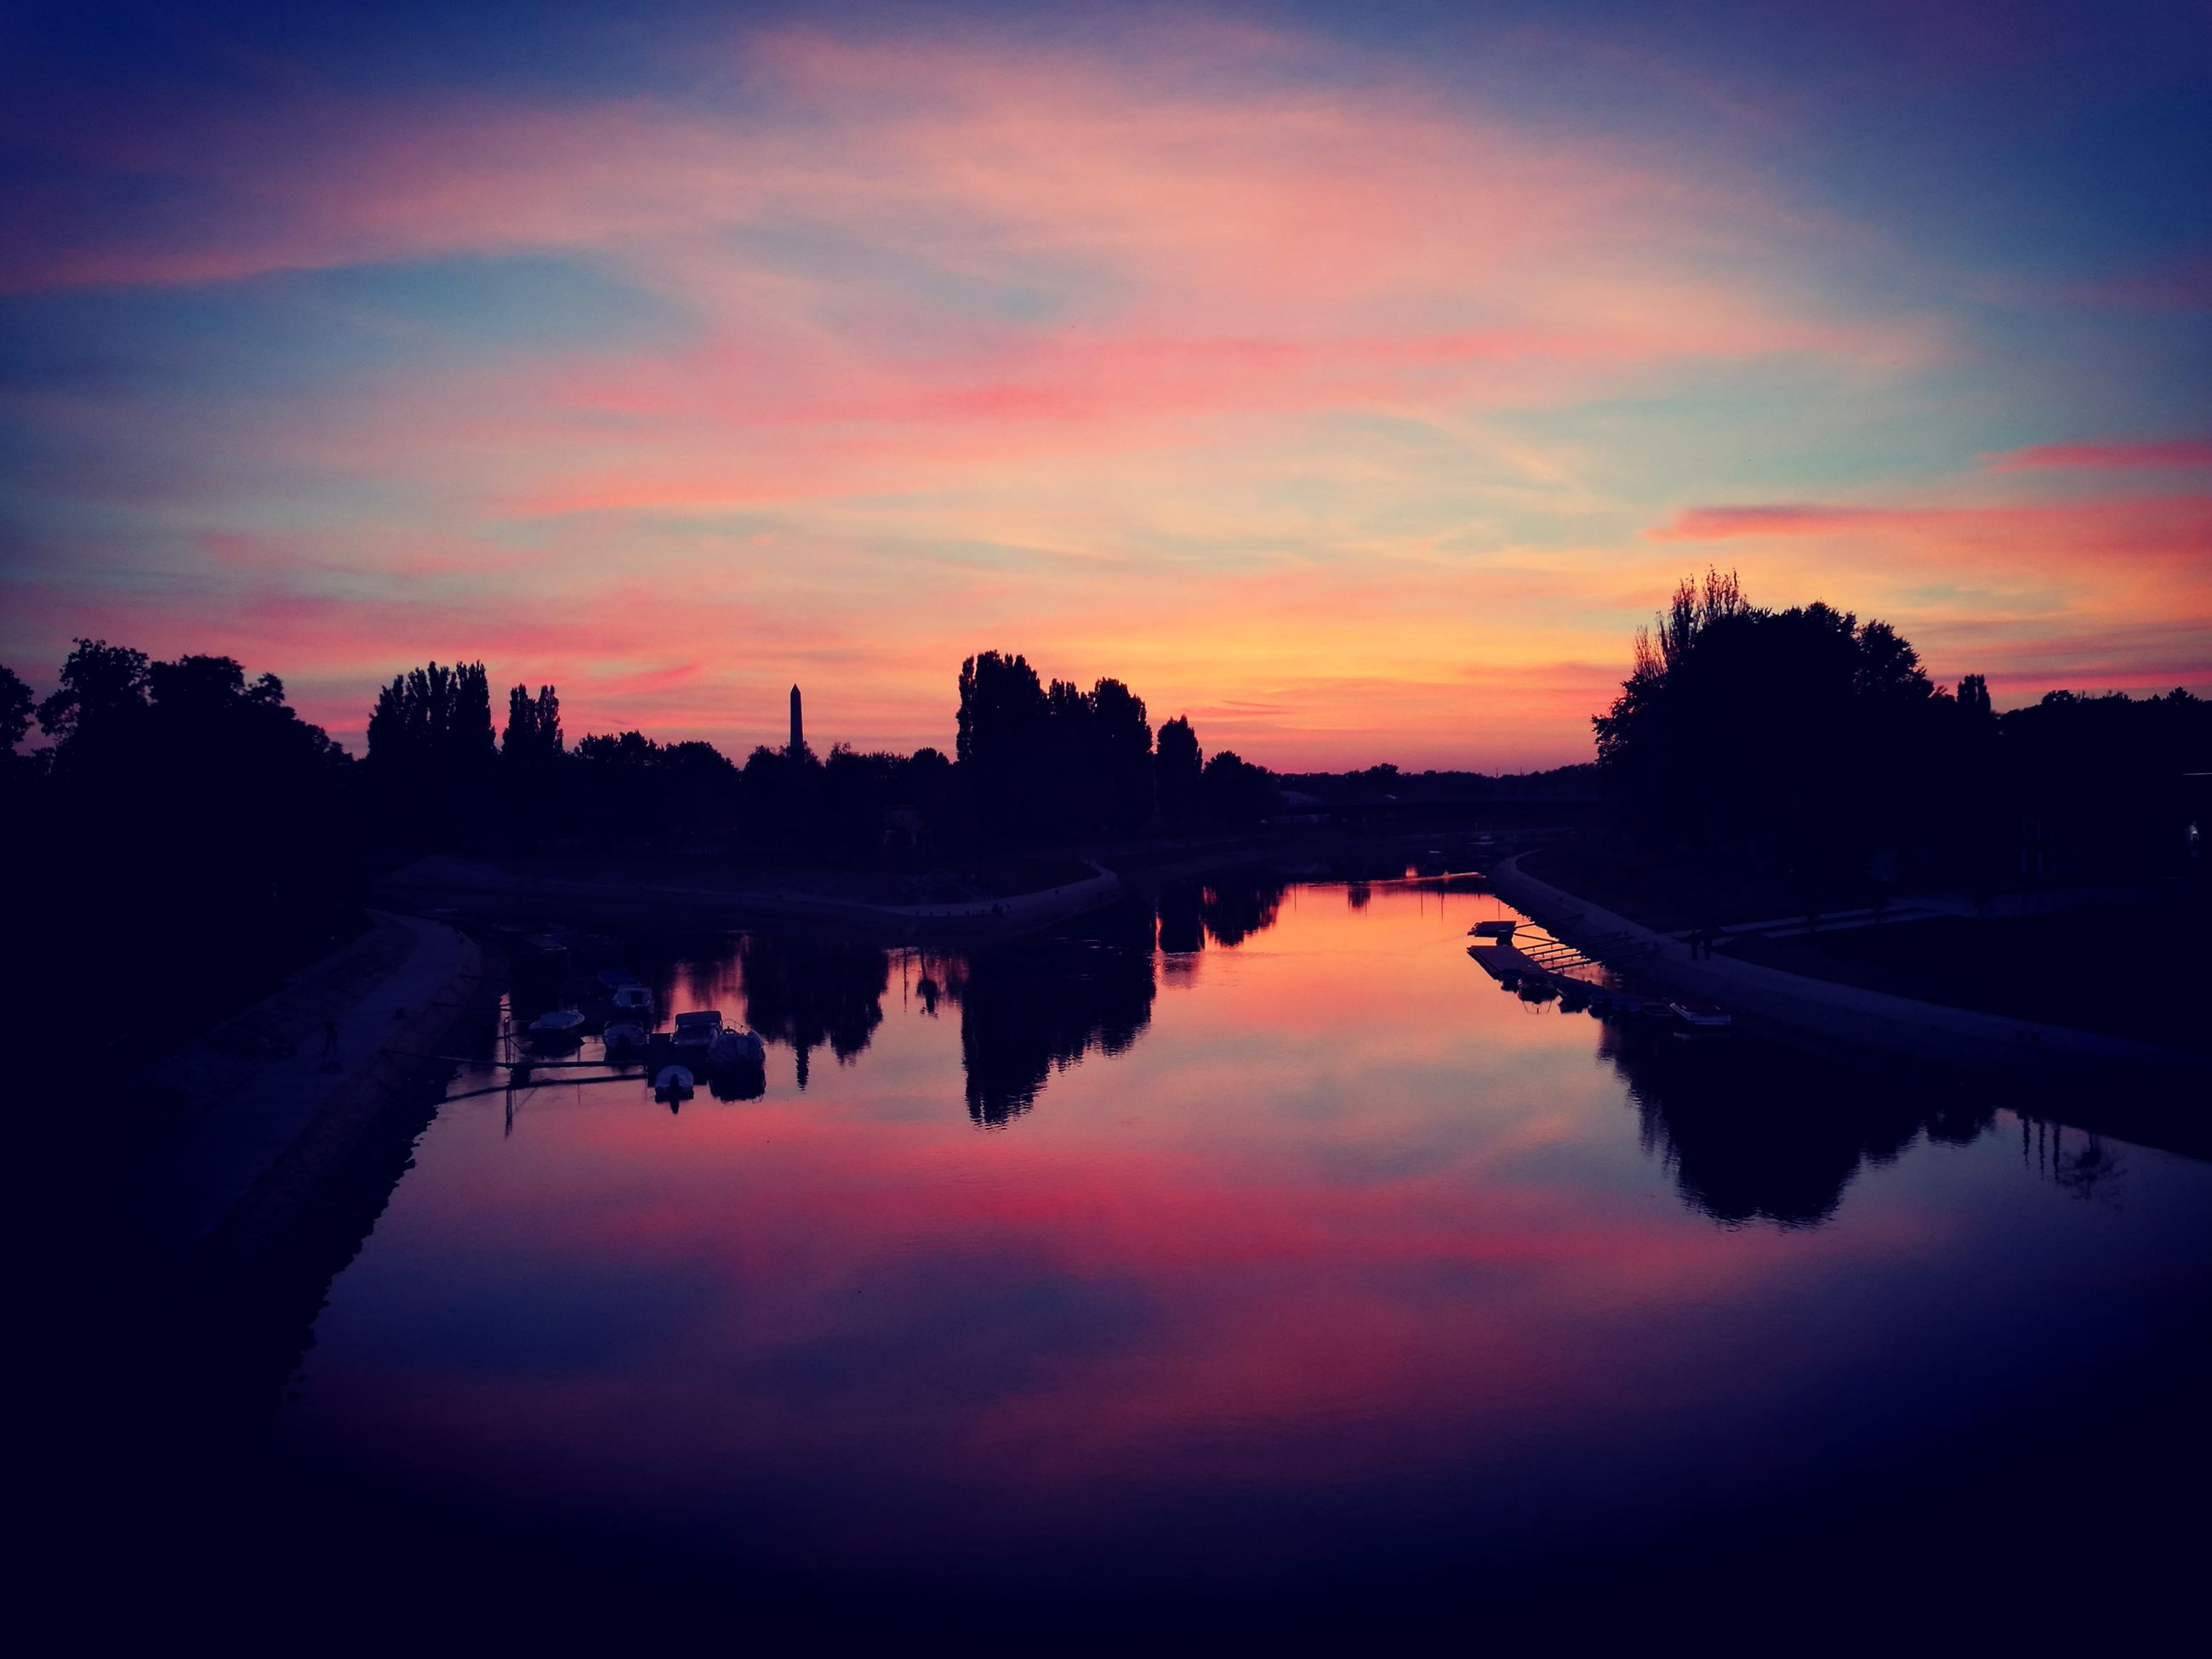 reflection, water, sunset, silhouette, scenics, lake, tranquil scene, tranquility, calm, waterfront, standing water, beauty in nature, orange color, idyllic, outline, nature, dark, sky, majestic, cloud, outdoors, blue, cloud - sky, non-urban scene, countryside, canal, moody sky, atmospheric mood, dramatic sky, no people, atmosphere